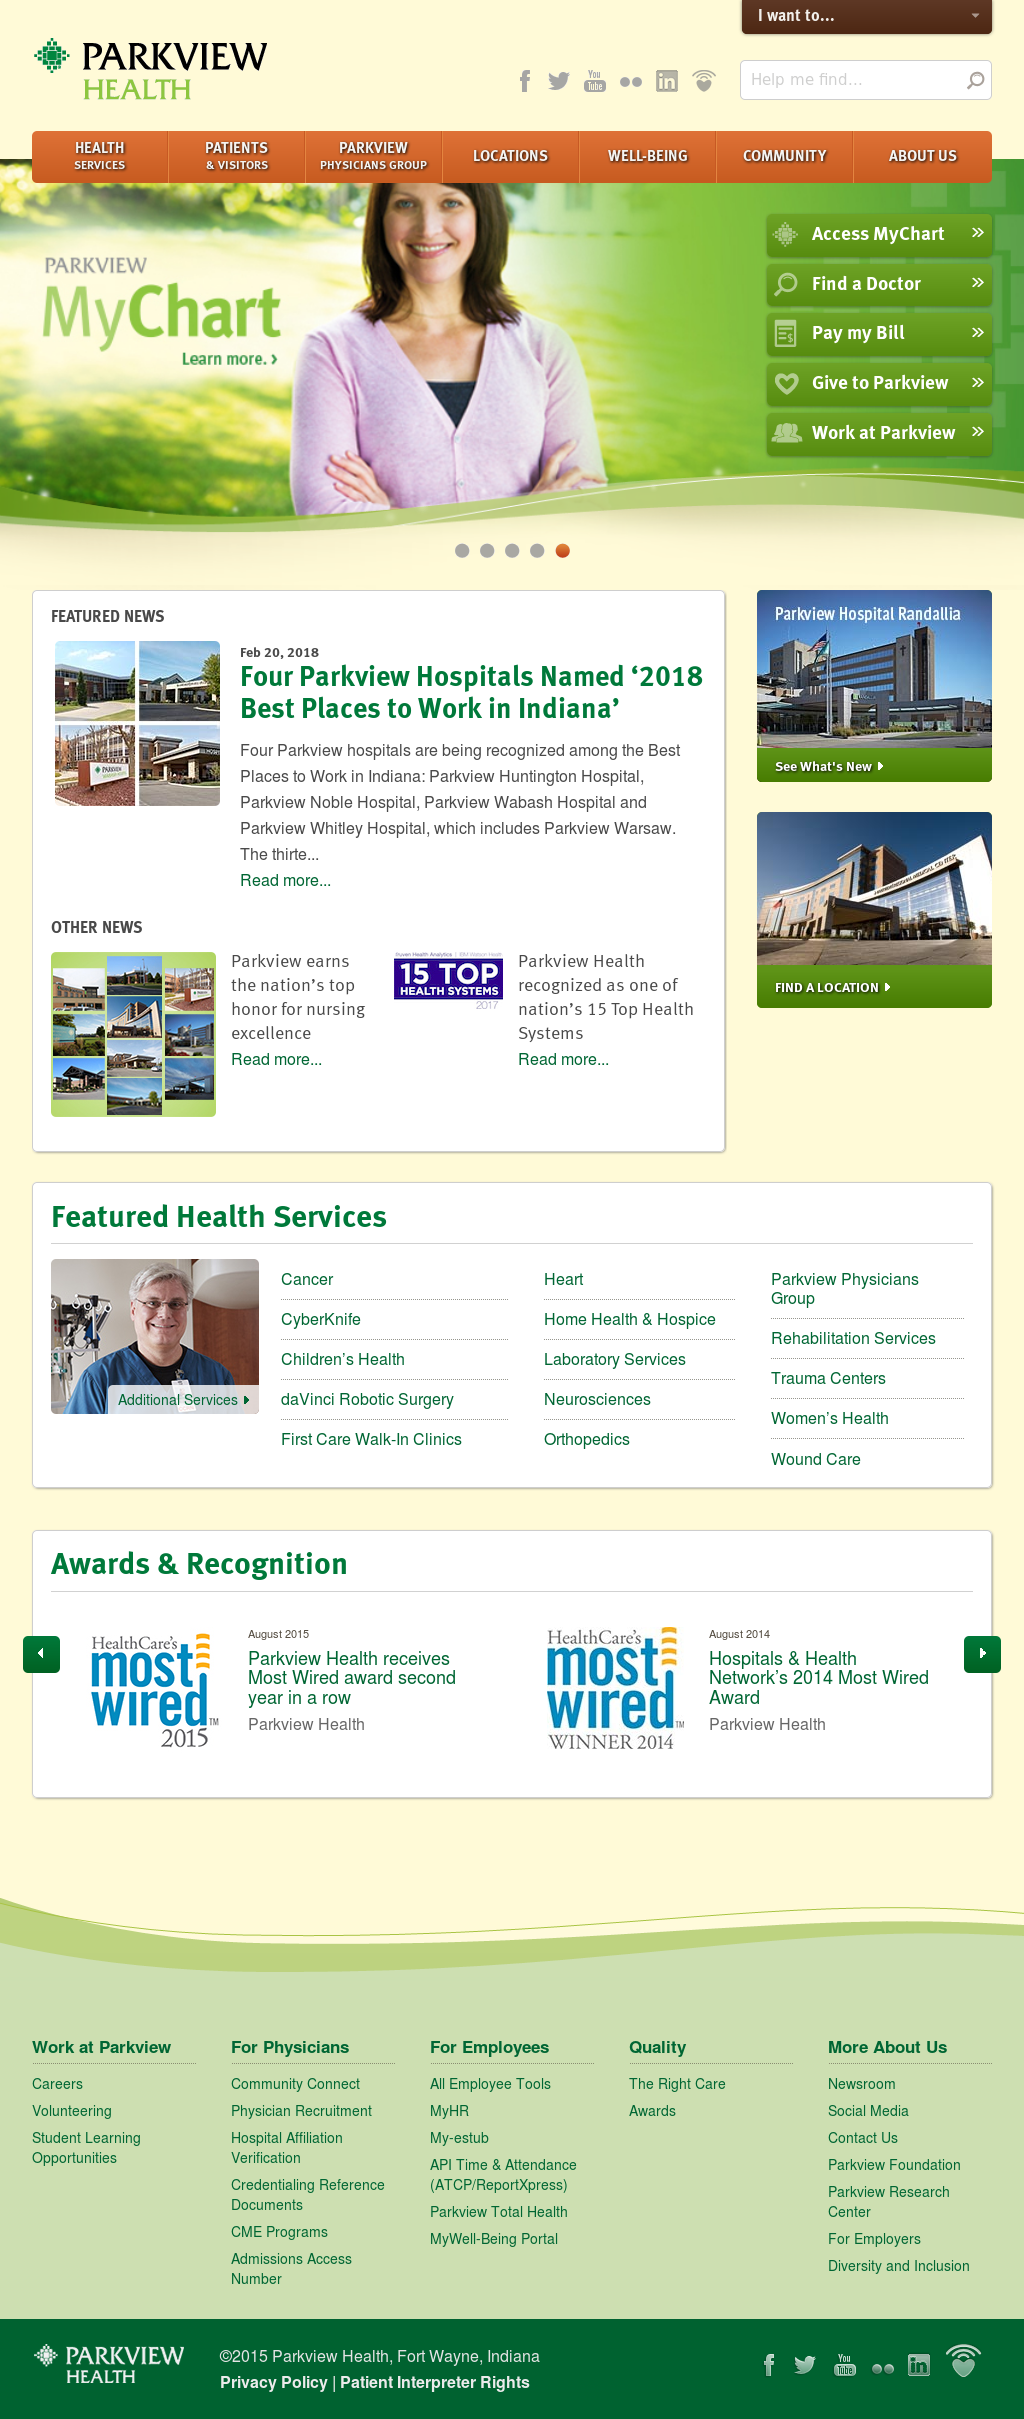 Owler Reports - Parkview Health posted a video